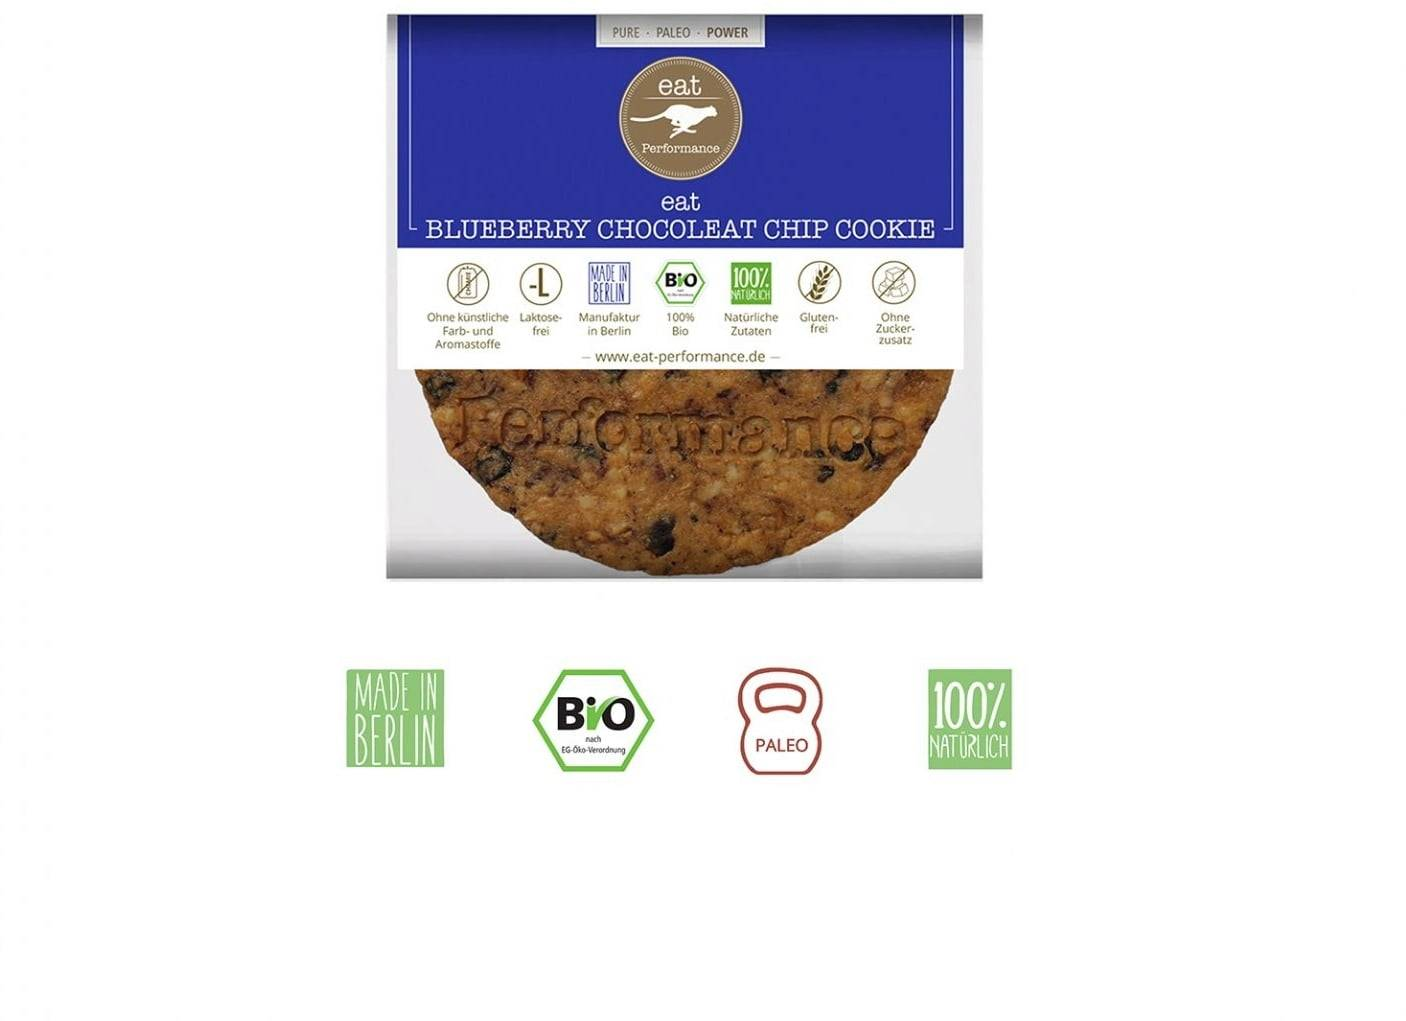 eat performance Cookie Paléo - Blueberry Chocoleat Chip